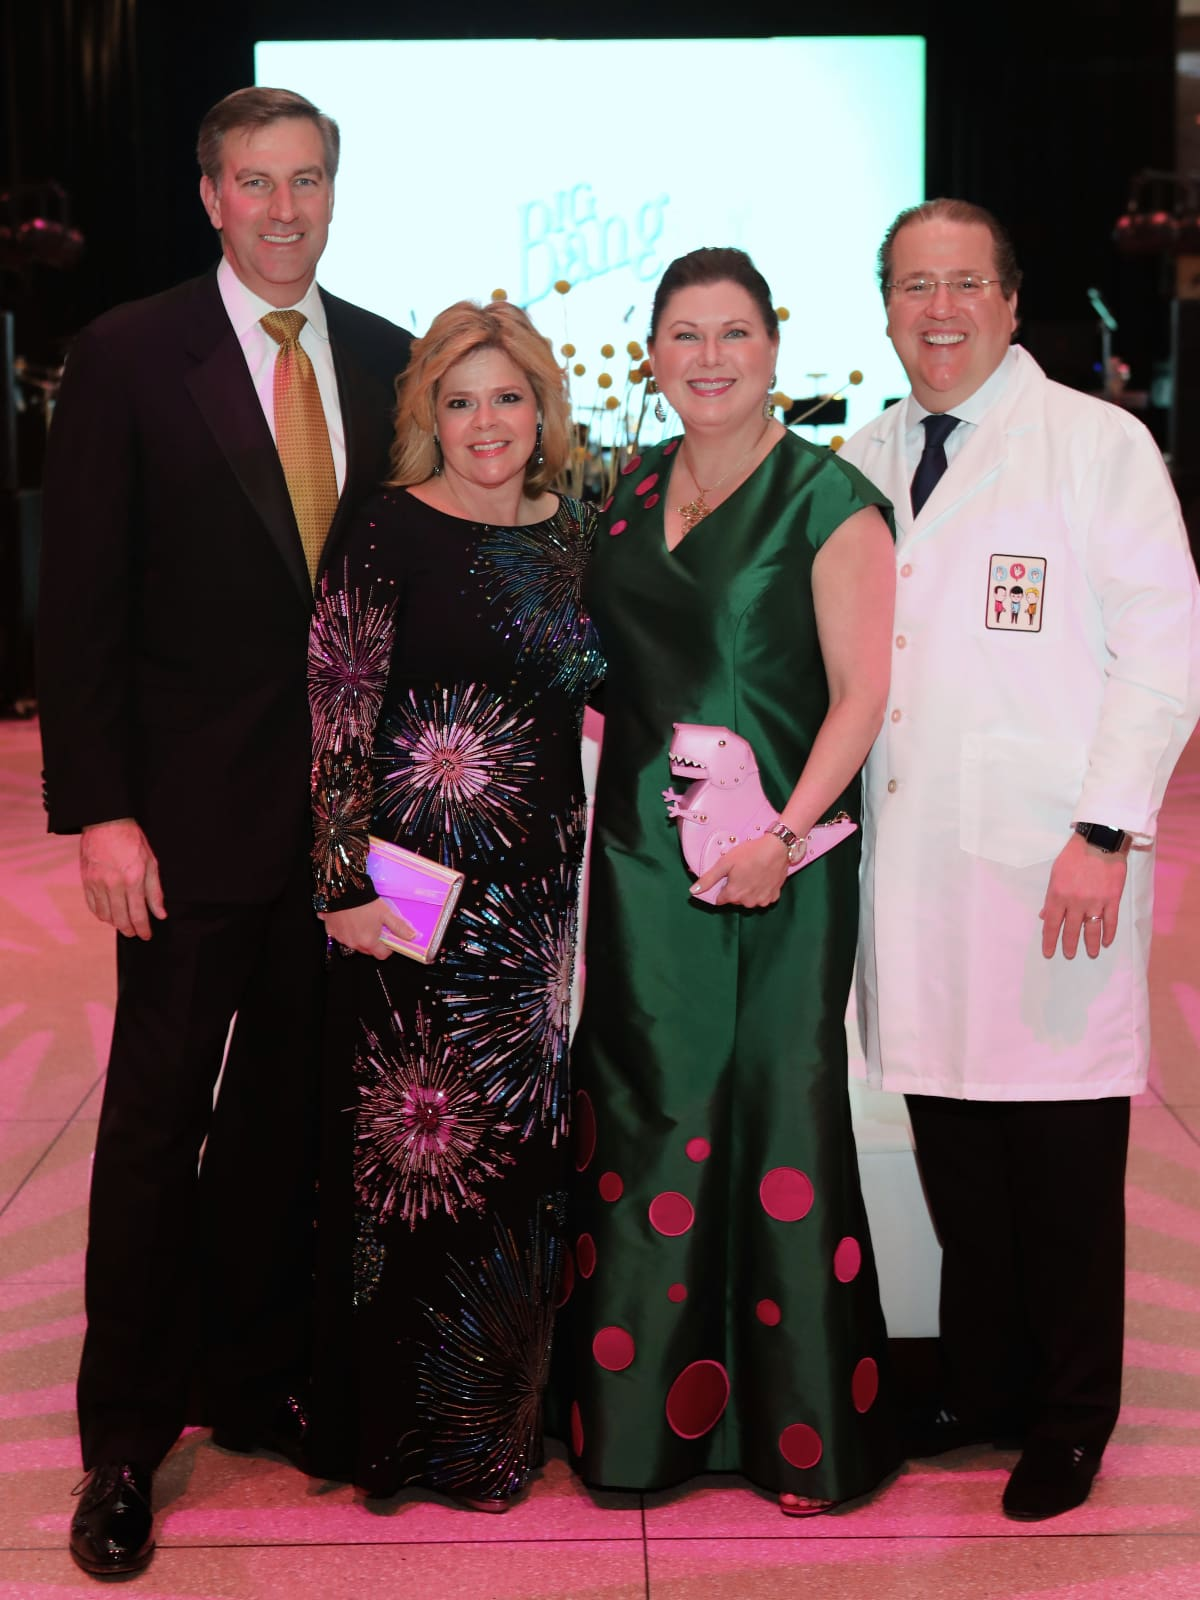 Houston, HMNS Big Bang Ball, March 2017, John Weinzierl, Kelli Weinzierl, Shawn Stephens Jordan, Jim Jordan